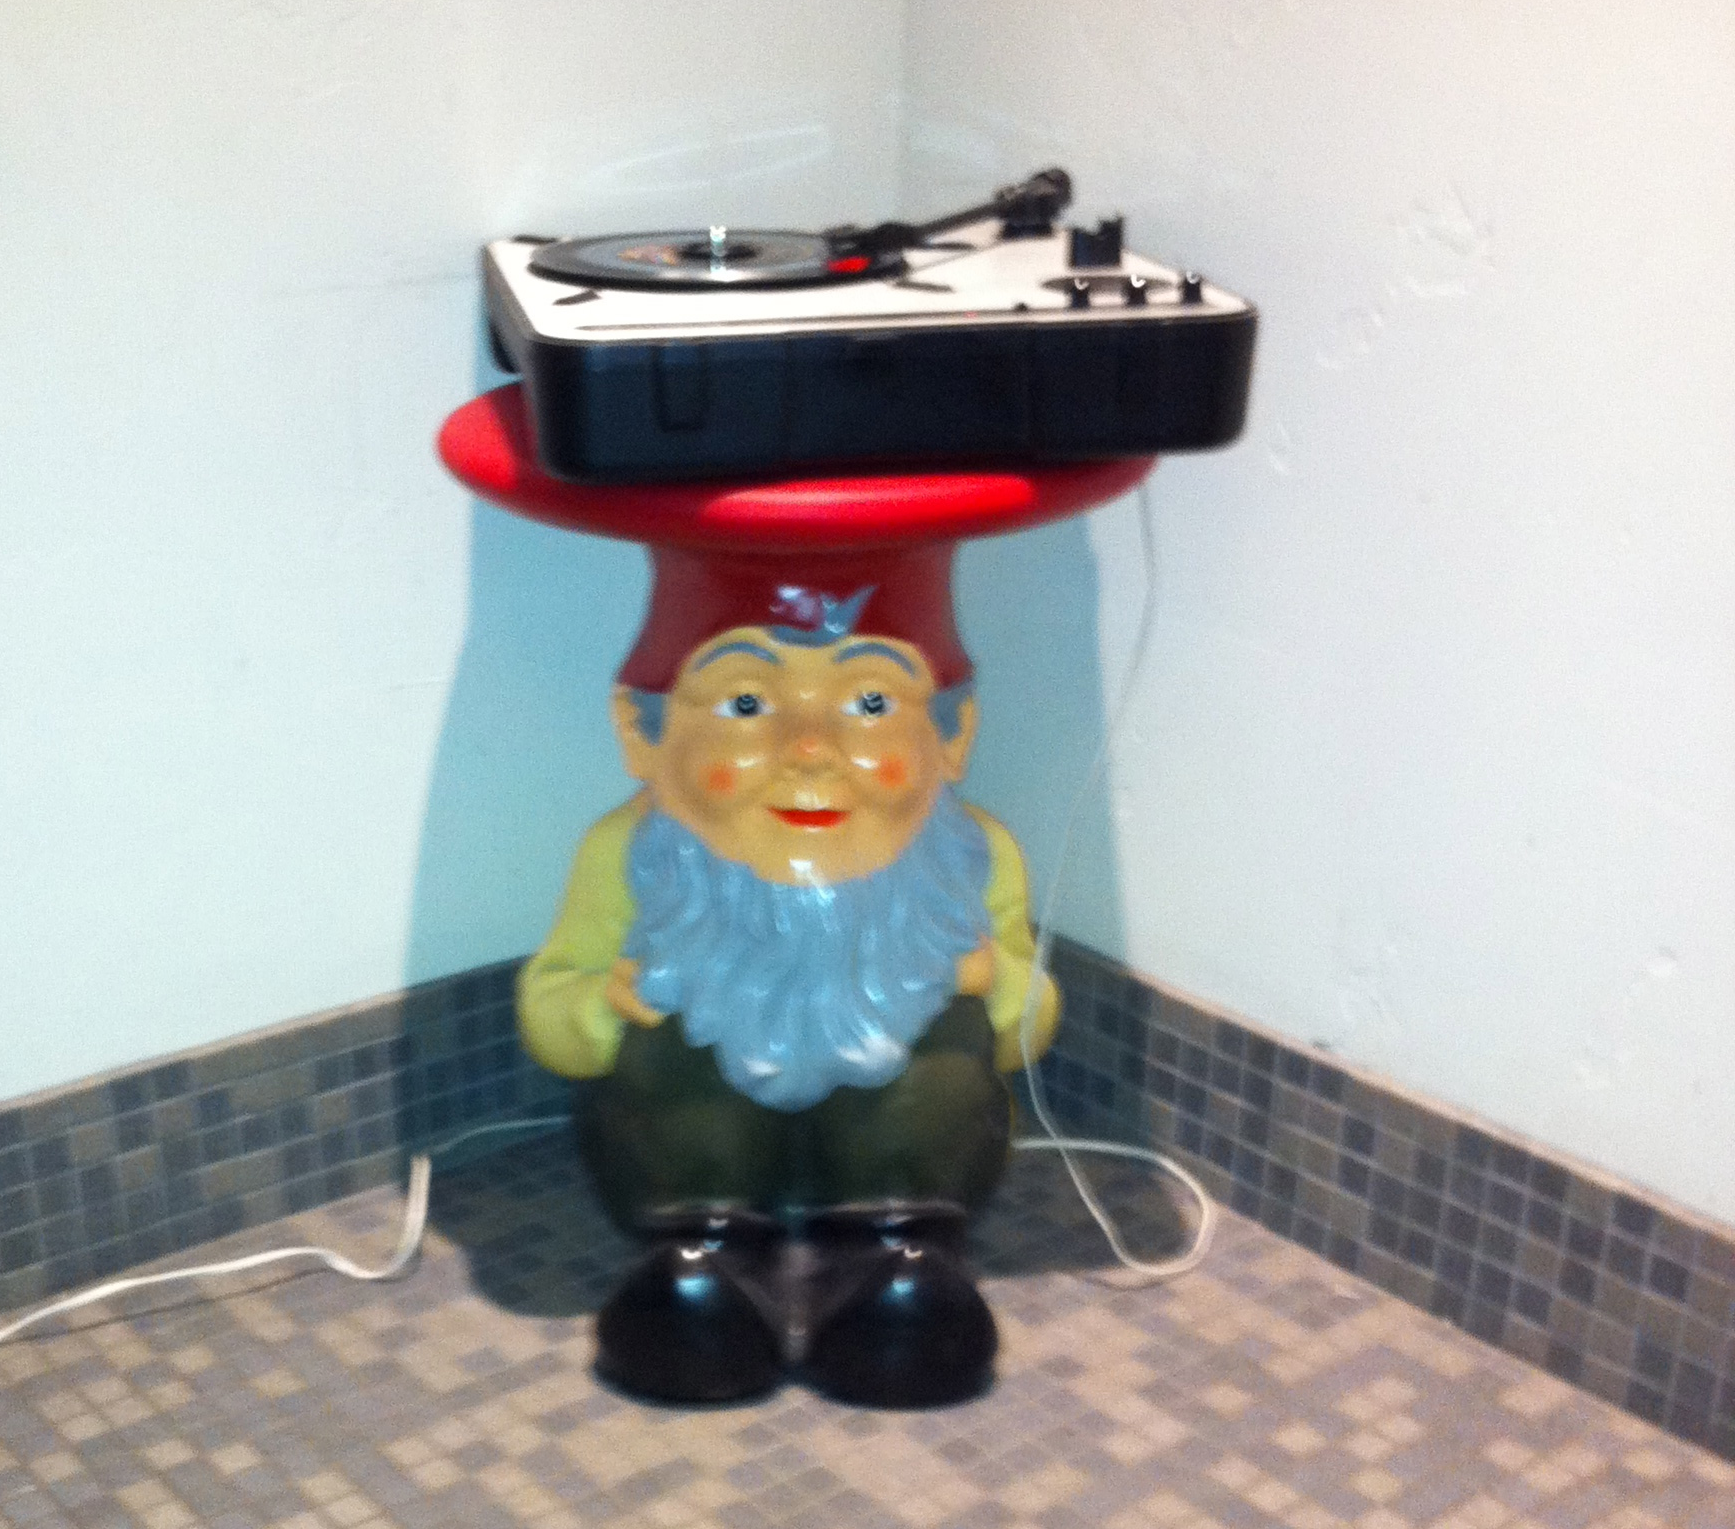 The gnome and record player in the Men's washroom (I am told there is a similar one in the women's) allows you to choose what music you want while you do your business. How cool is that? Keep Boise bad!